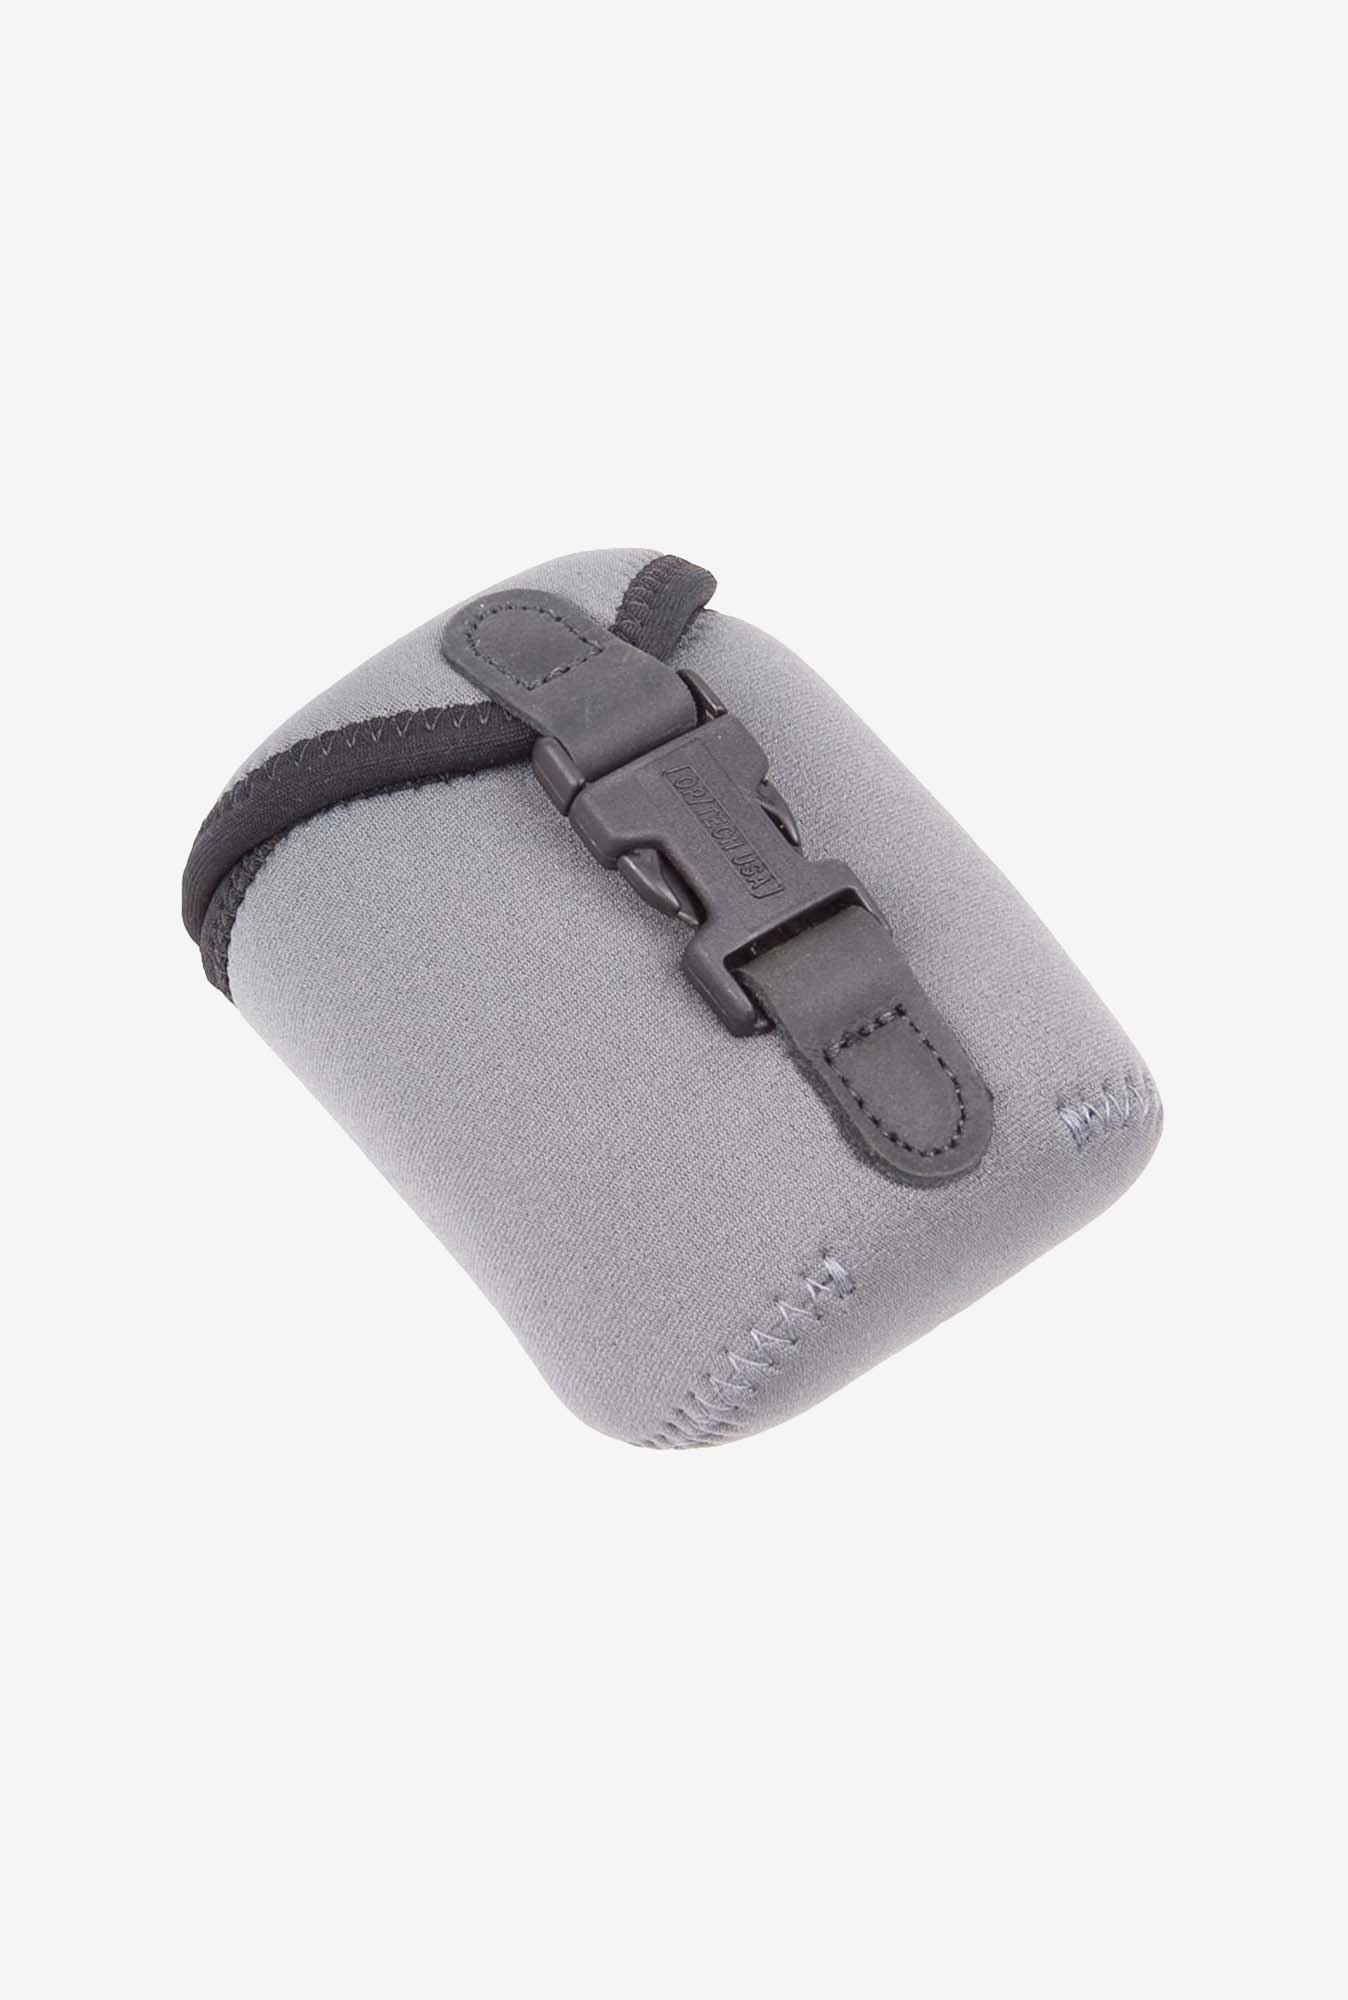 Op/Tech Usa 6411164 Soft Pouch Wide Body Small (Steel)